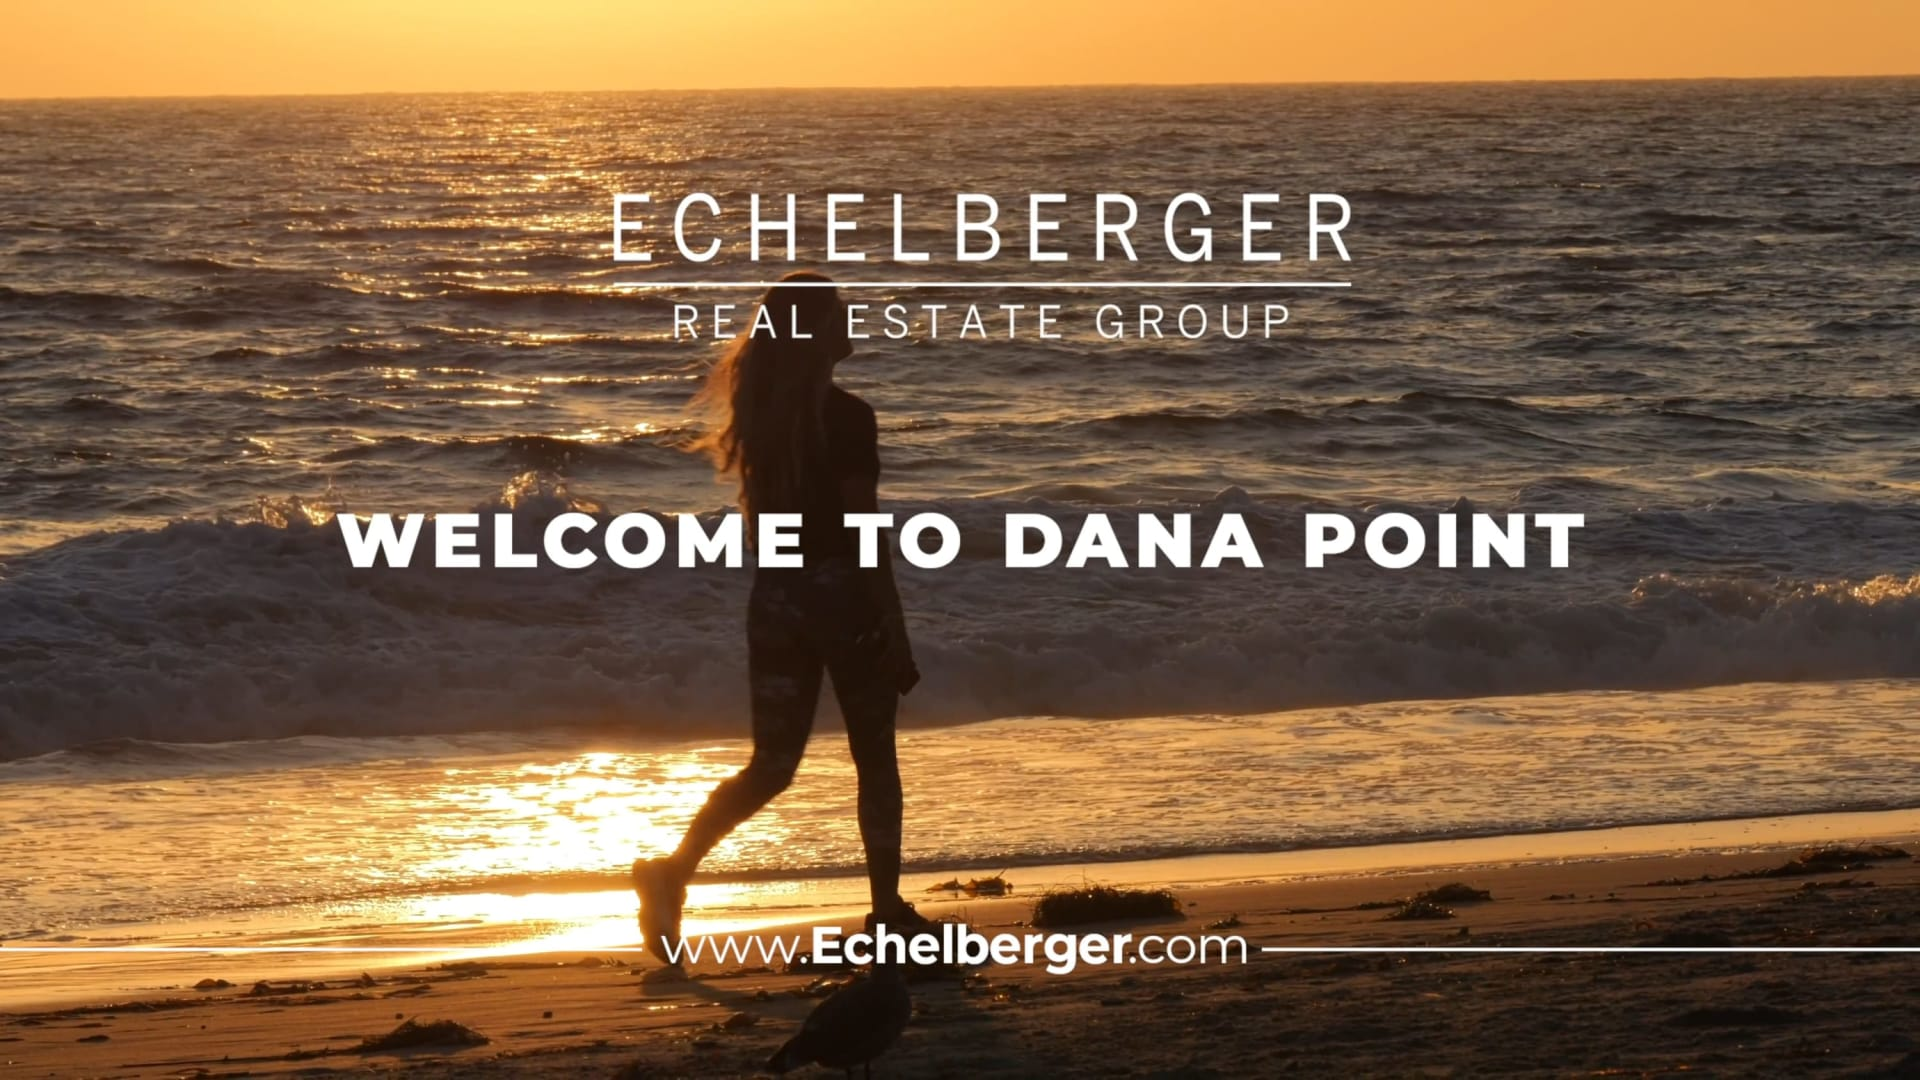 Dana Point video preview